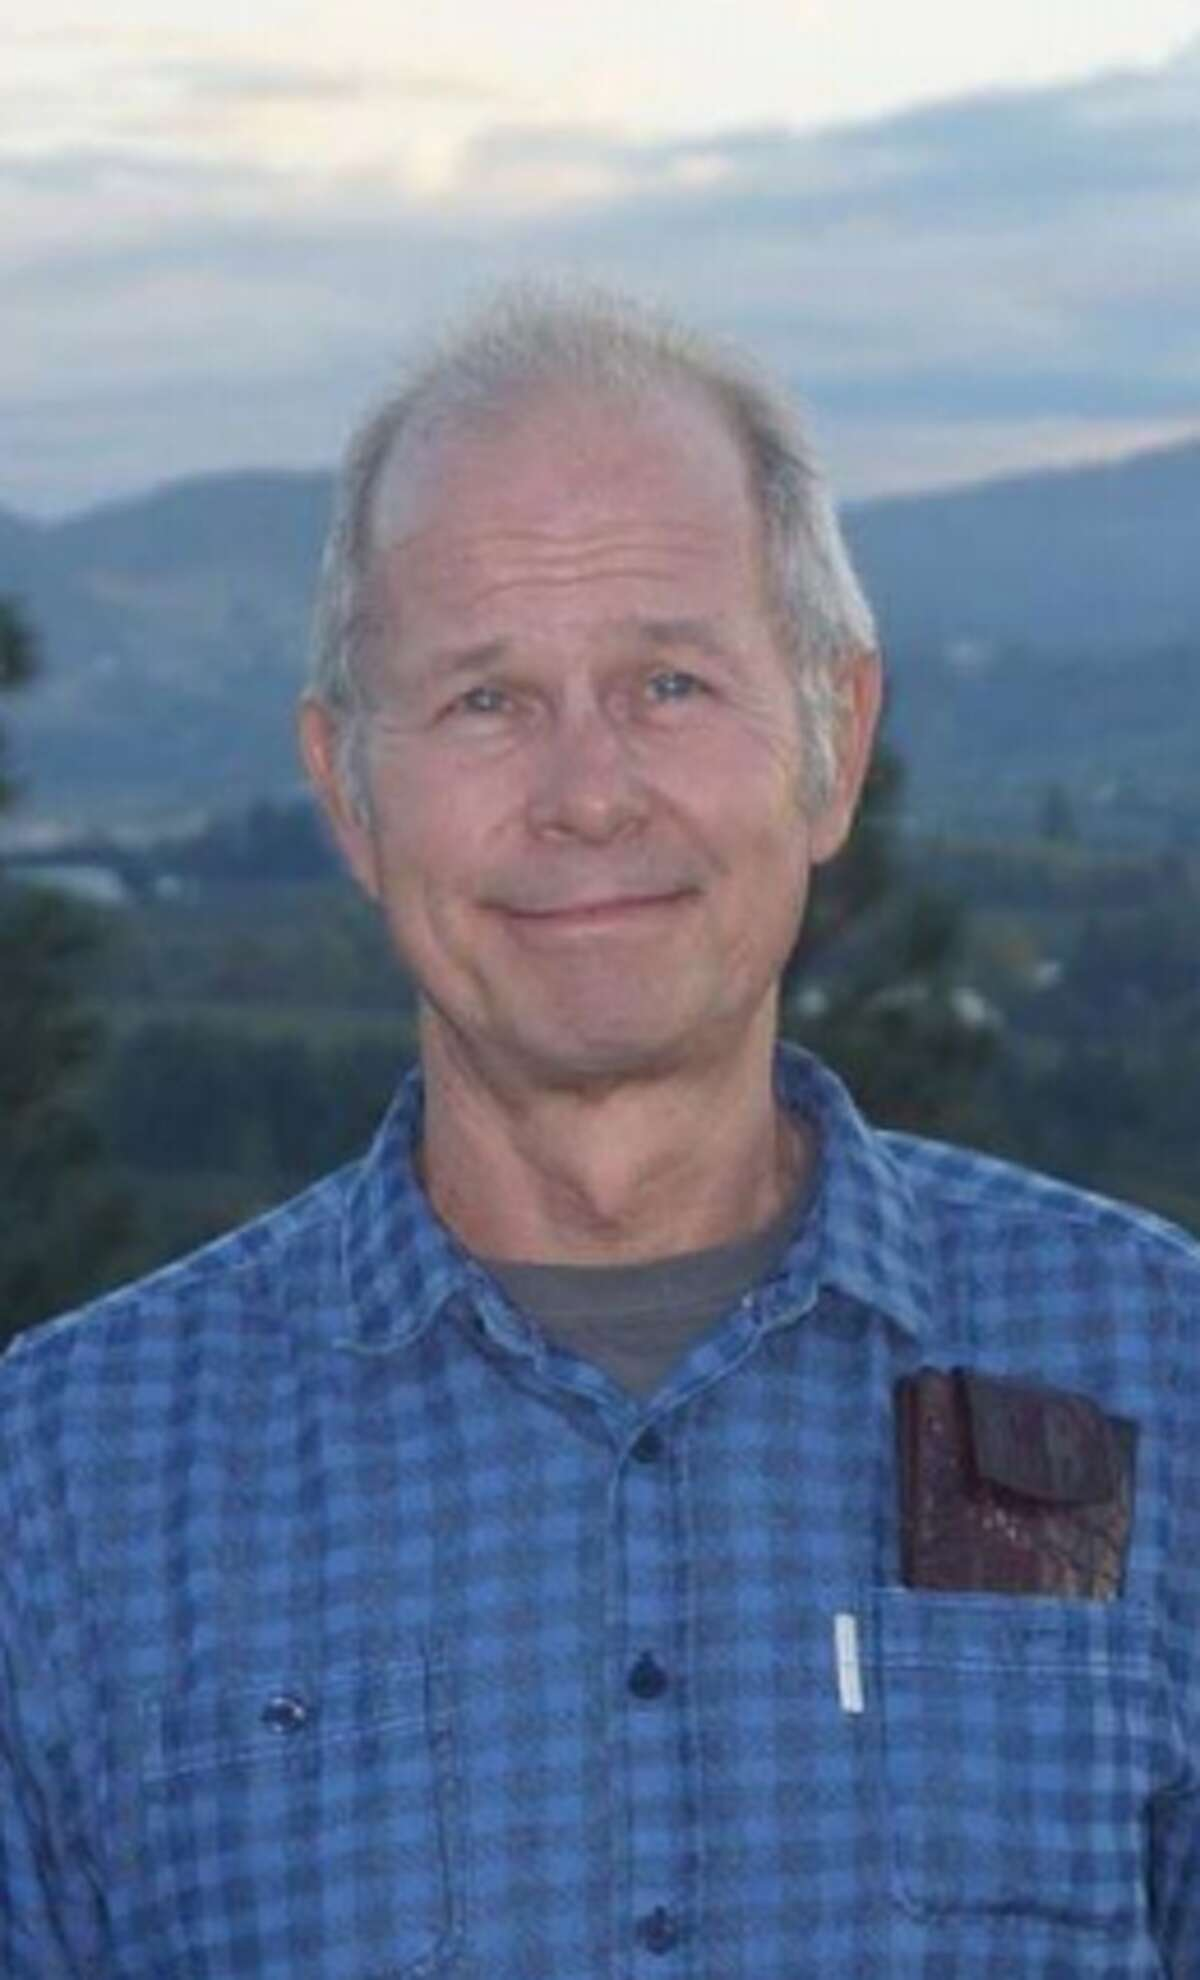 James Simmon, 63, went missing in the aftermath of the storm.